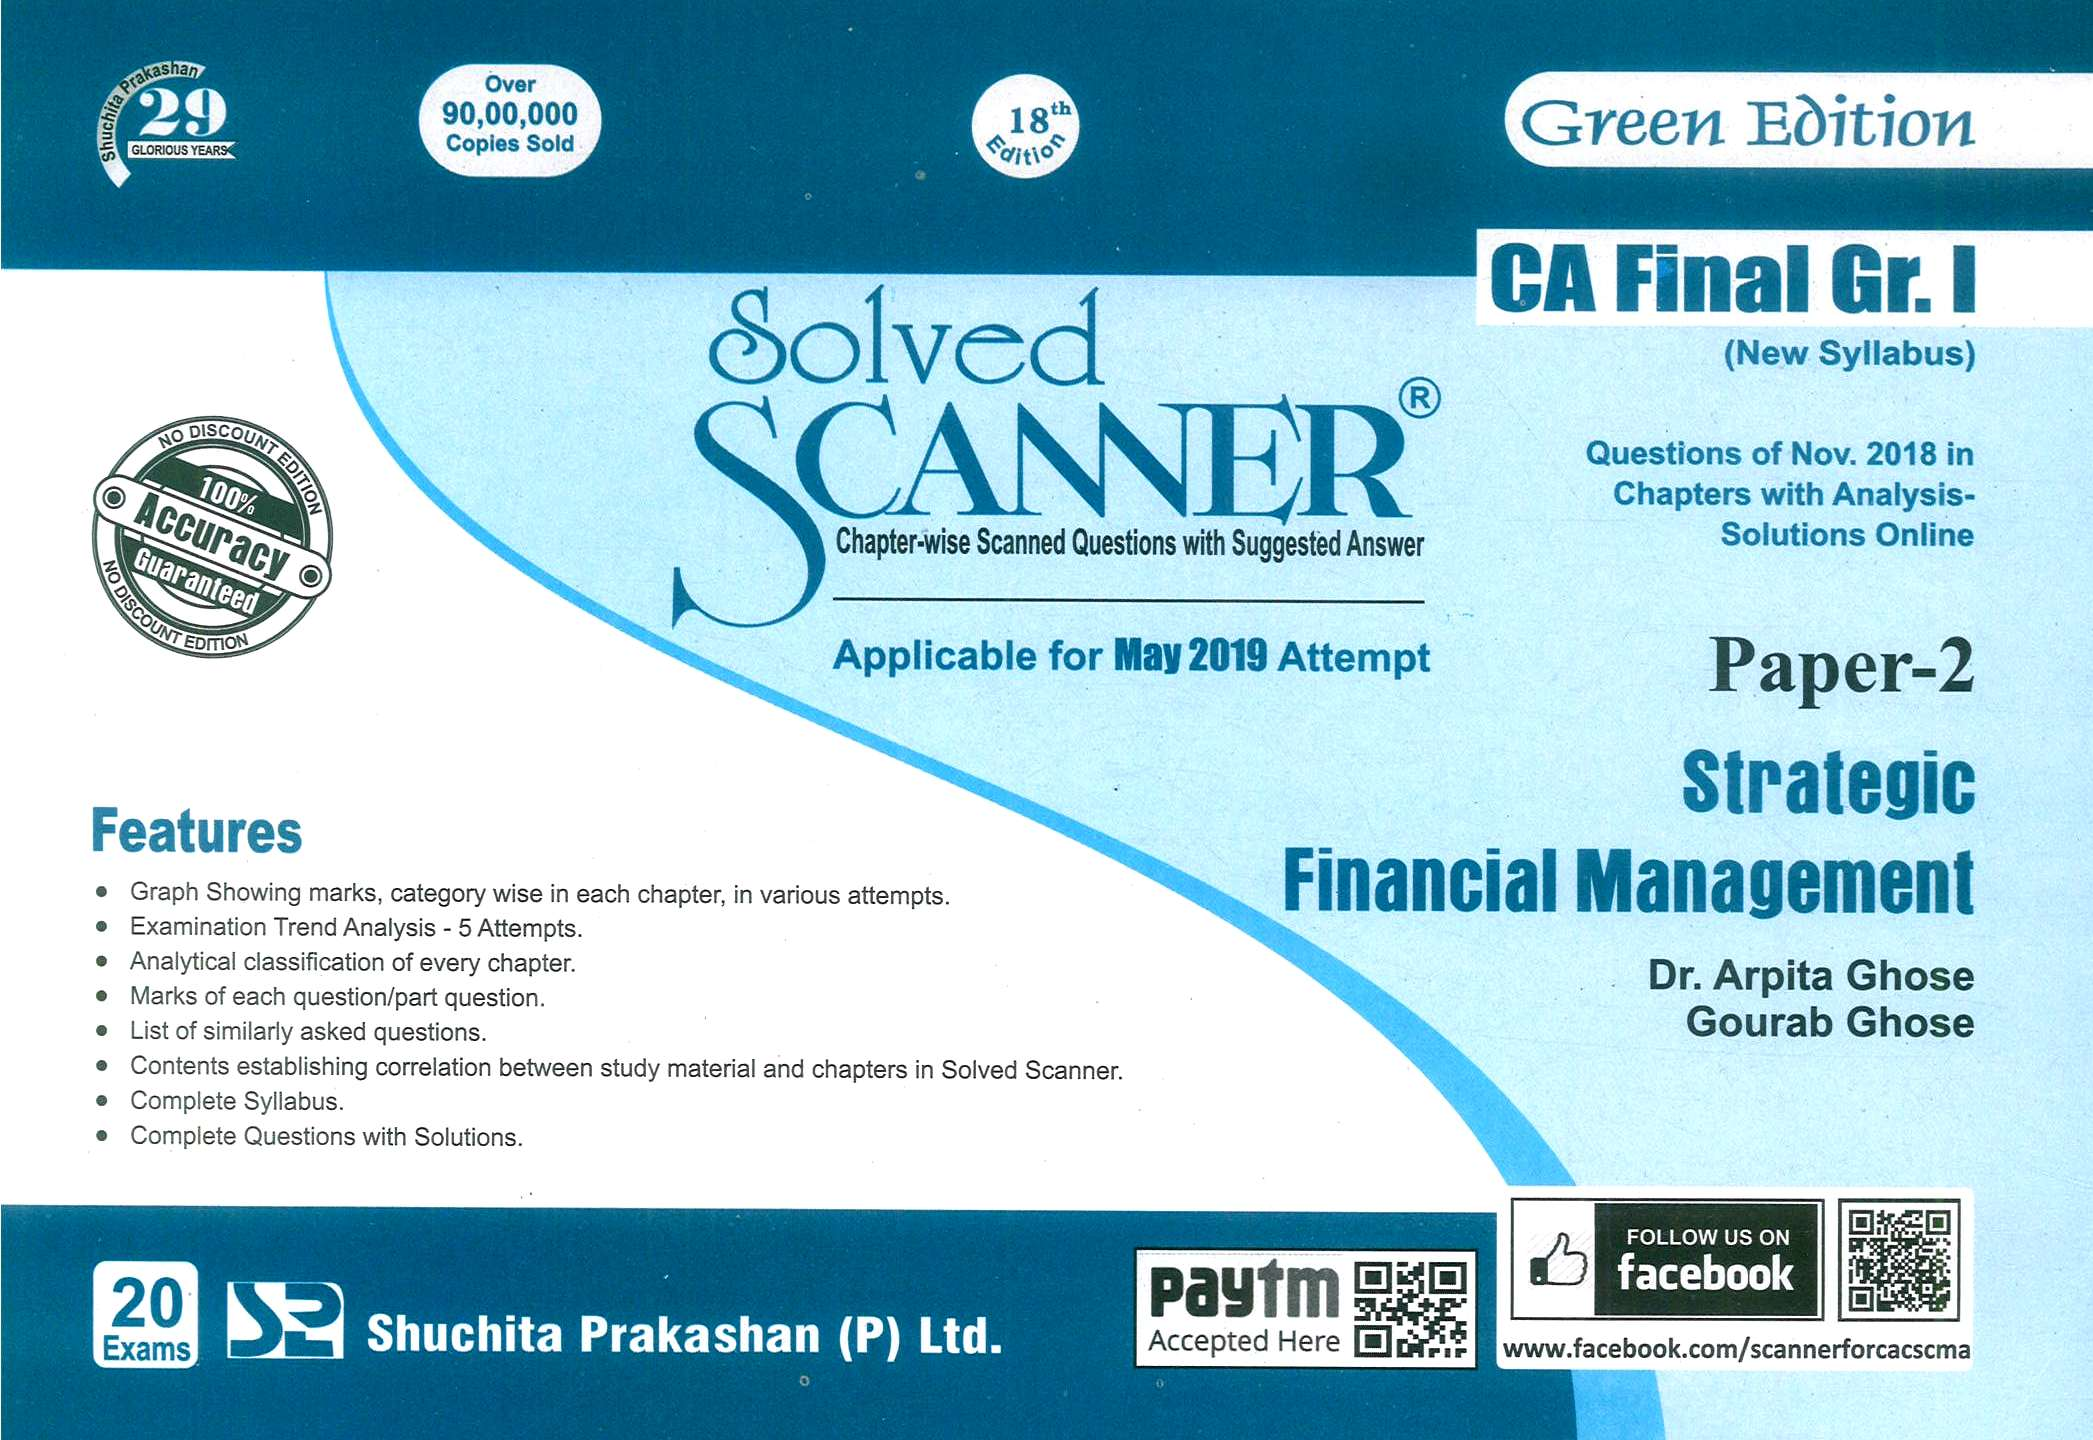 Shuchita Prakashan Solved Scanner of Strategic Financial Management CA Final Group-I Paper-2 ( New Syllabus) Green Edition for May 2019 Exam by Dr. Arpita Ghose and Gourab Ghose (Shuchita Prakashan) Edition Jan 2019